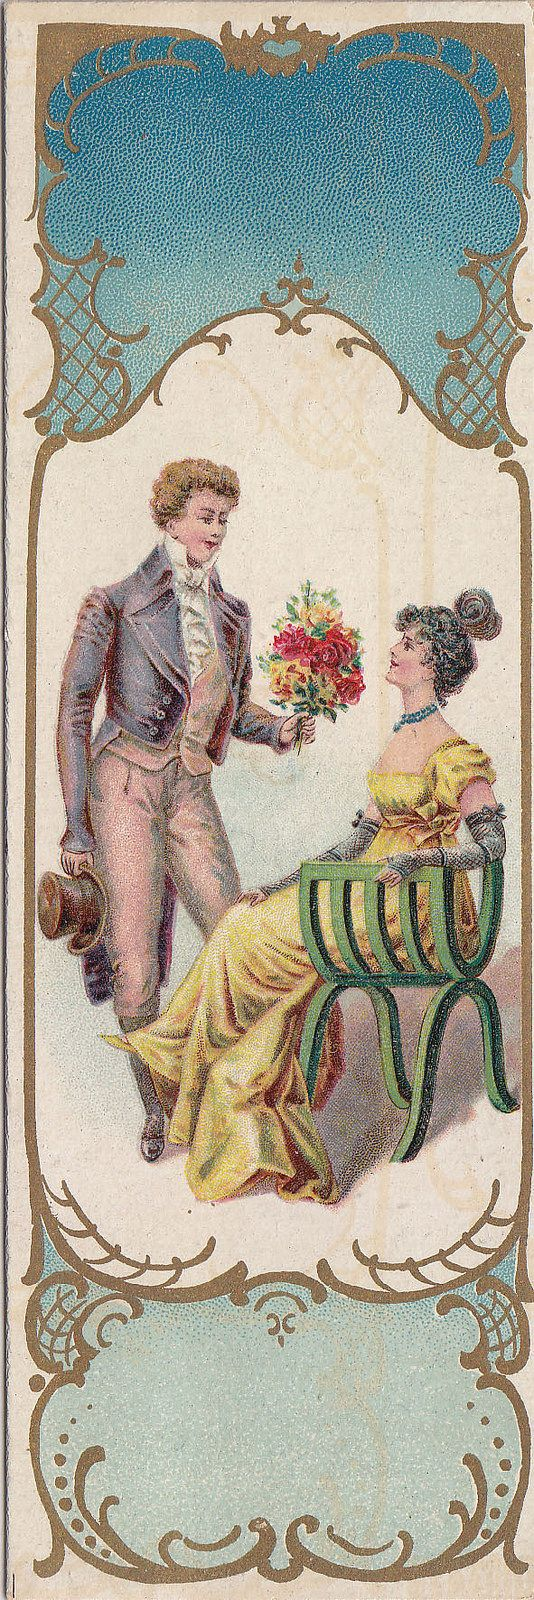 https://flic.kr/p/oBJNDn | chromo bookmark bougies bollinckx  - anderlecht   - man presenting seated woman with flowers: